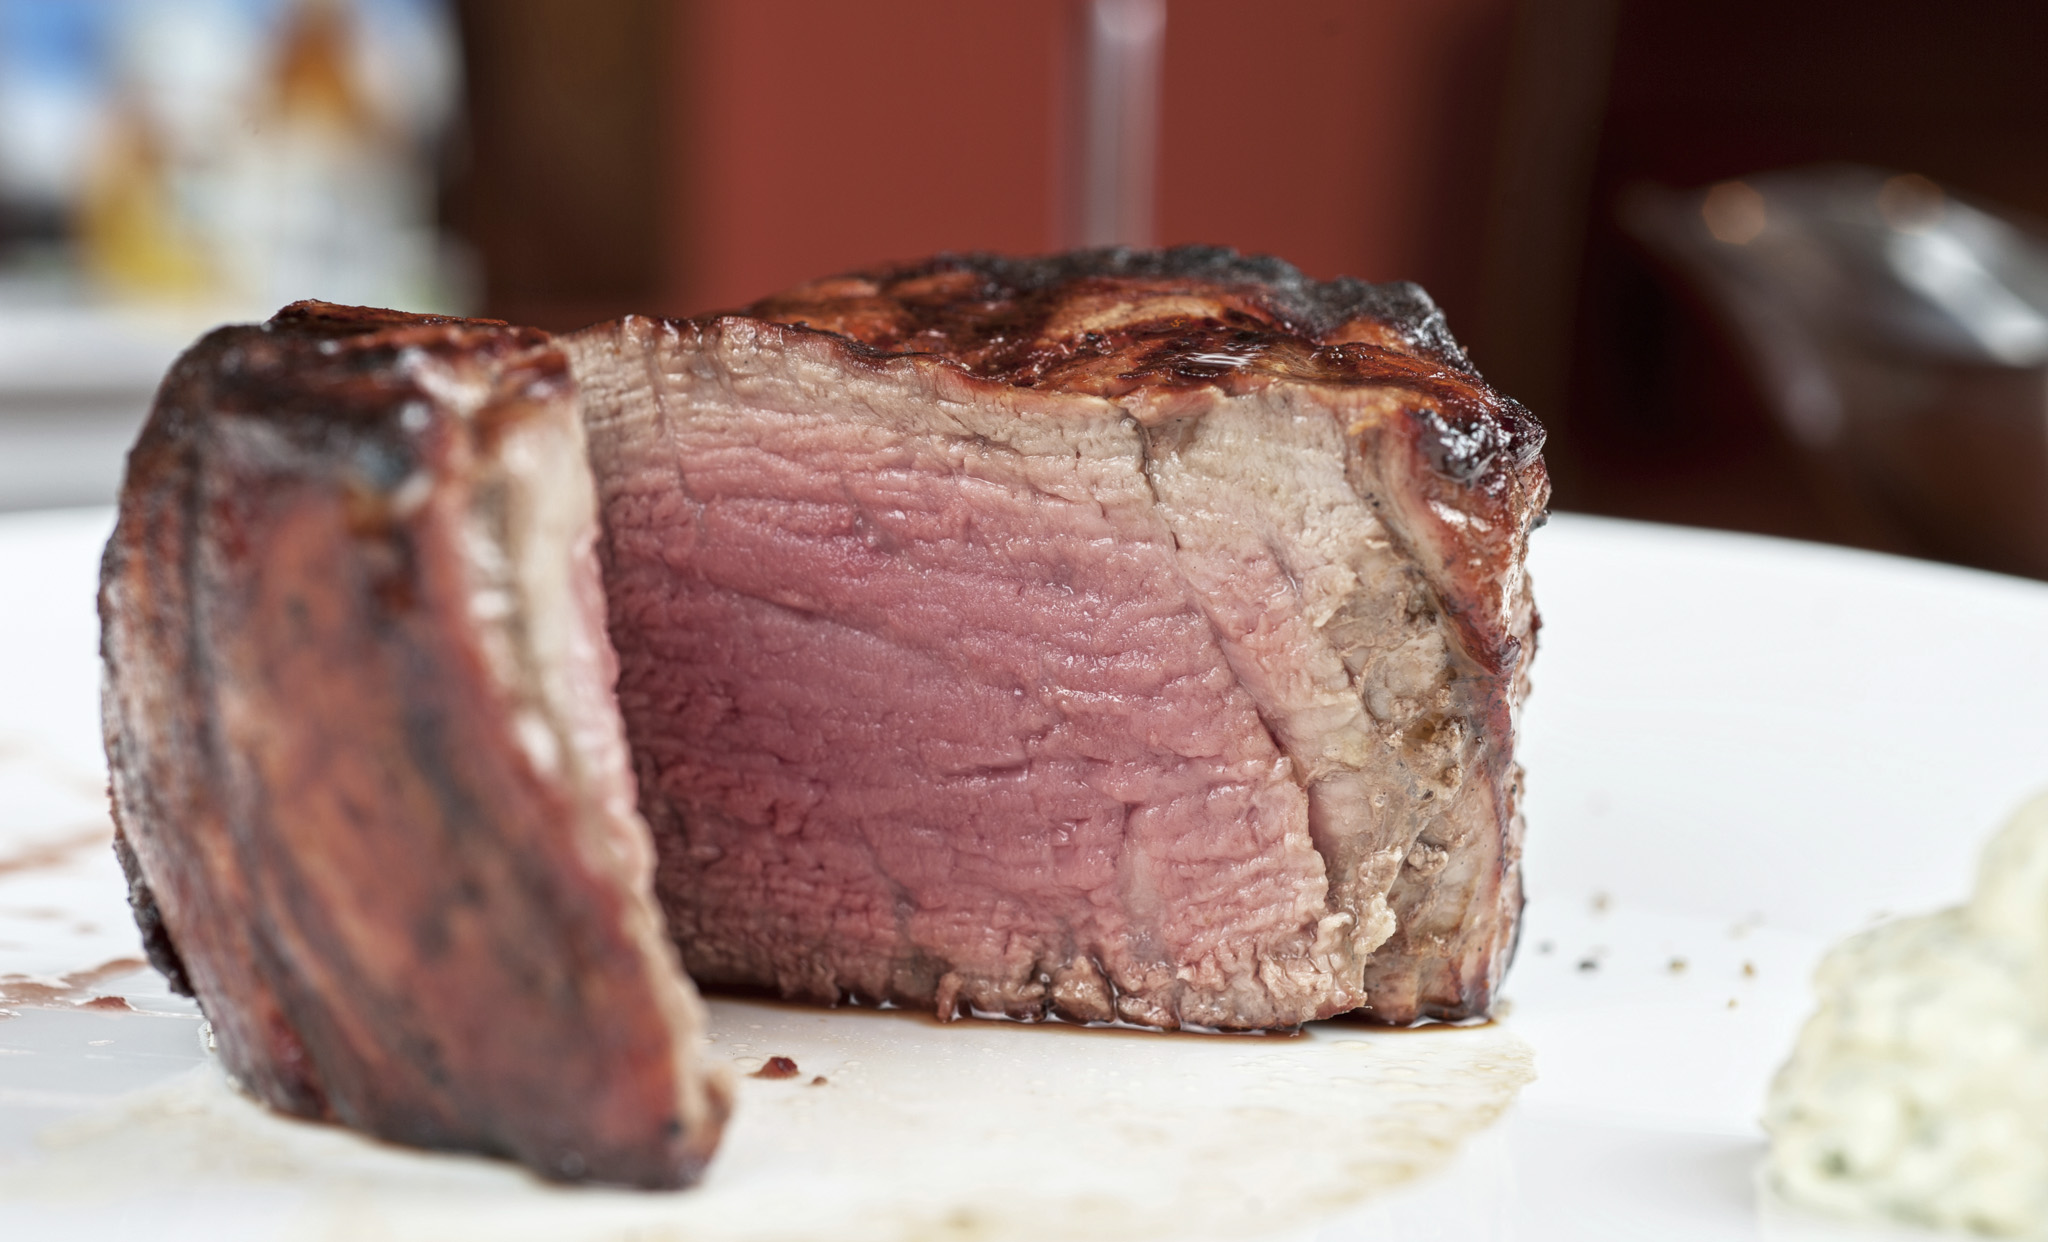 A Chicago Steakhouse Chef on How to Cook the Perfect Steak